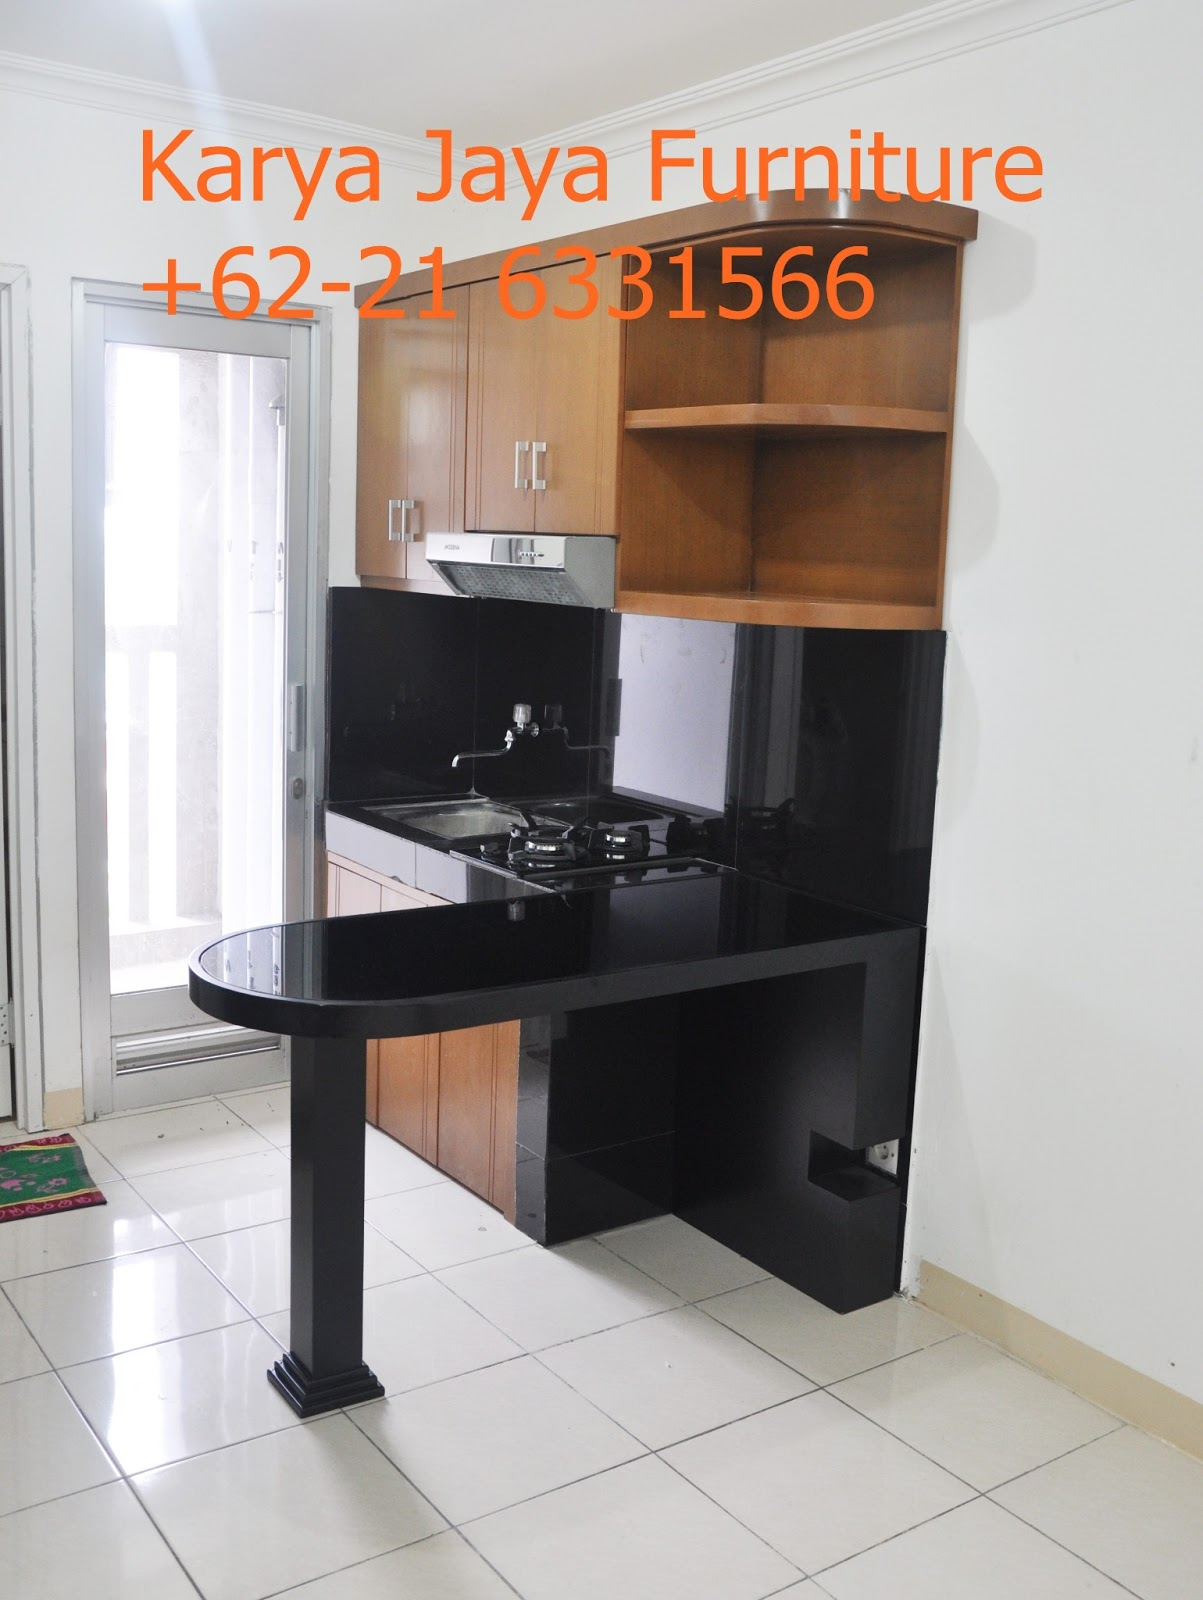 Karya jaya furniture roxy jakarta project kitchen set for Kitchen set jakarta